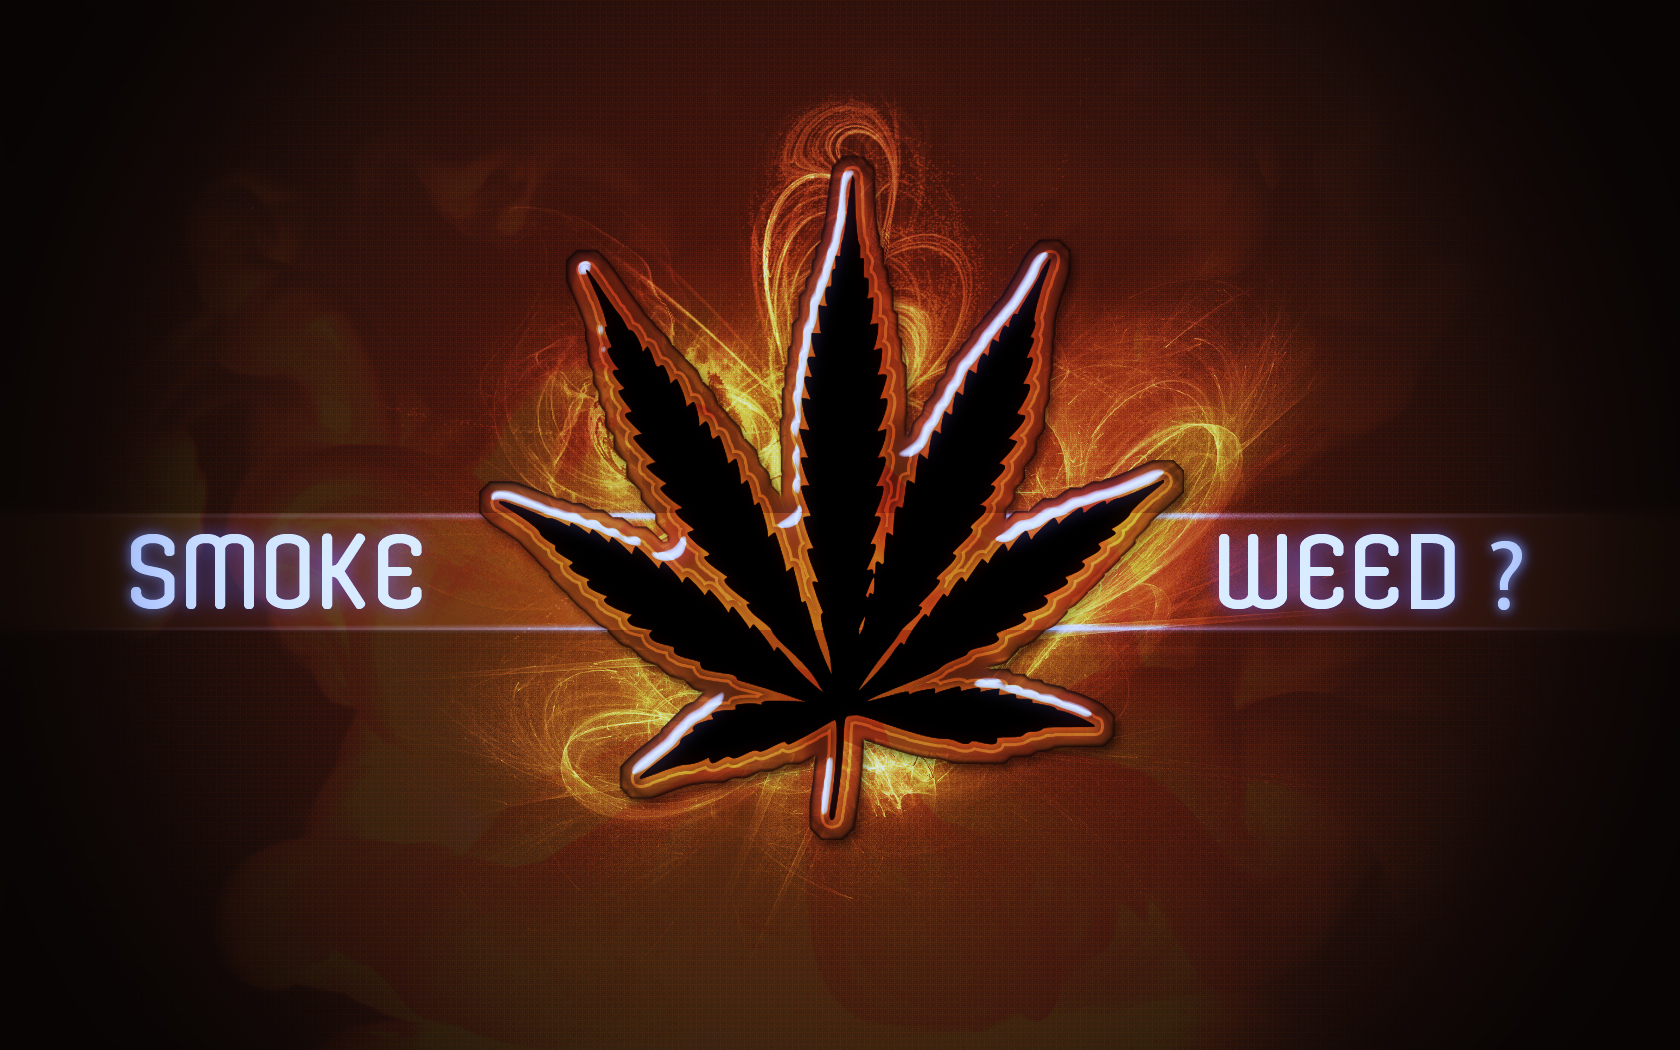 Weed Wallpaper (Smoke Weed ?) by aVe1337 on DeviantArt